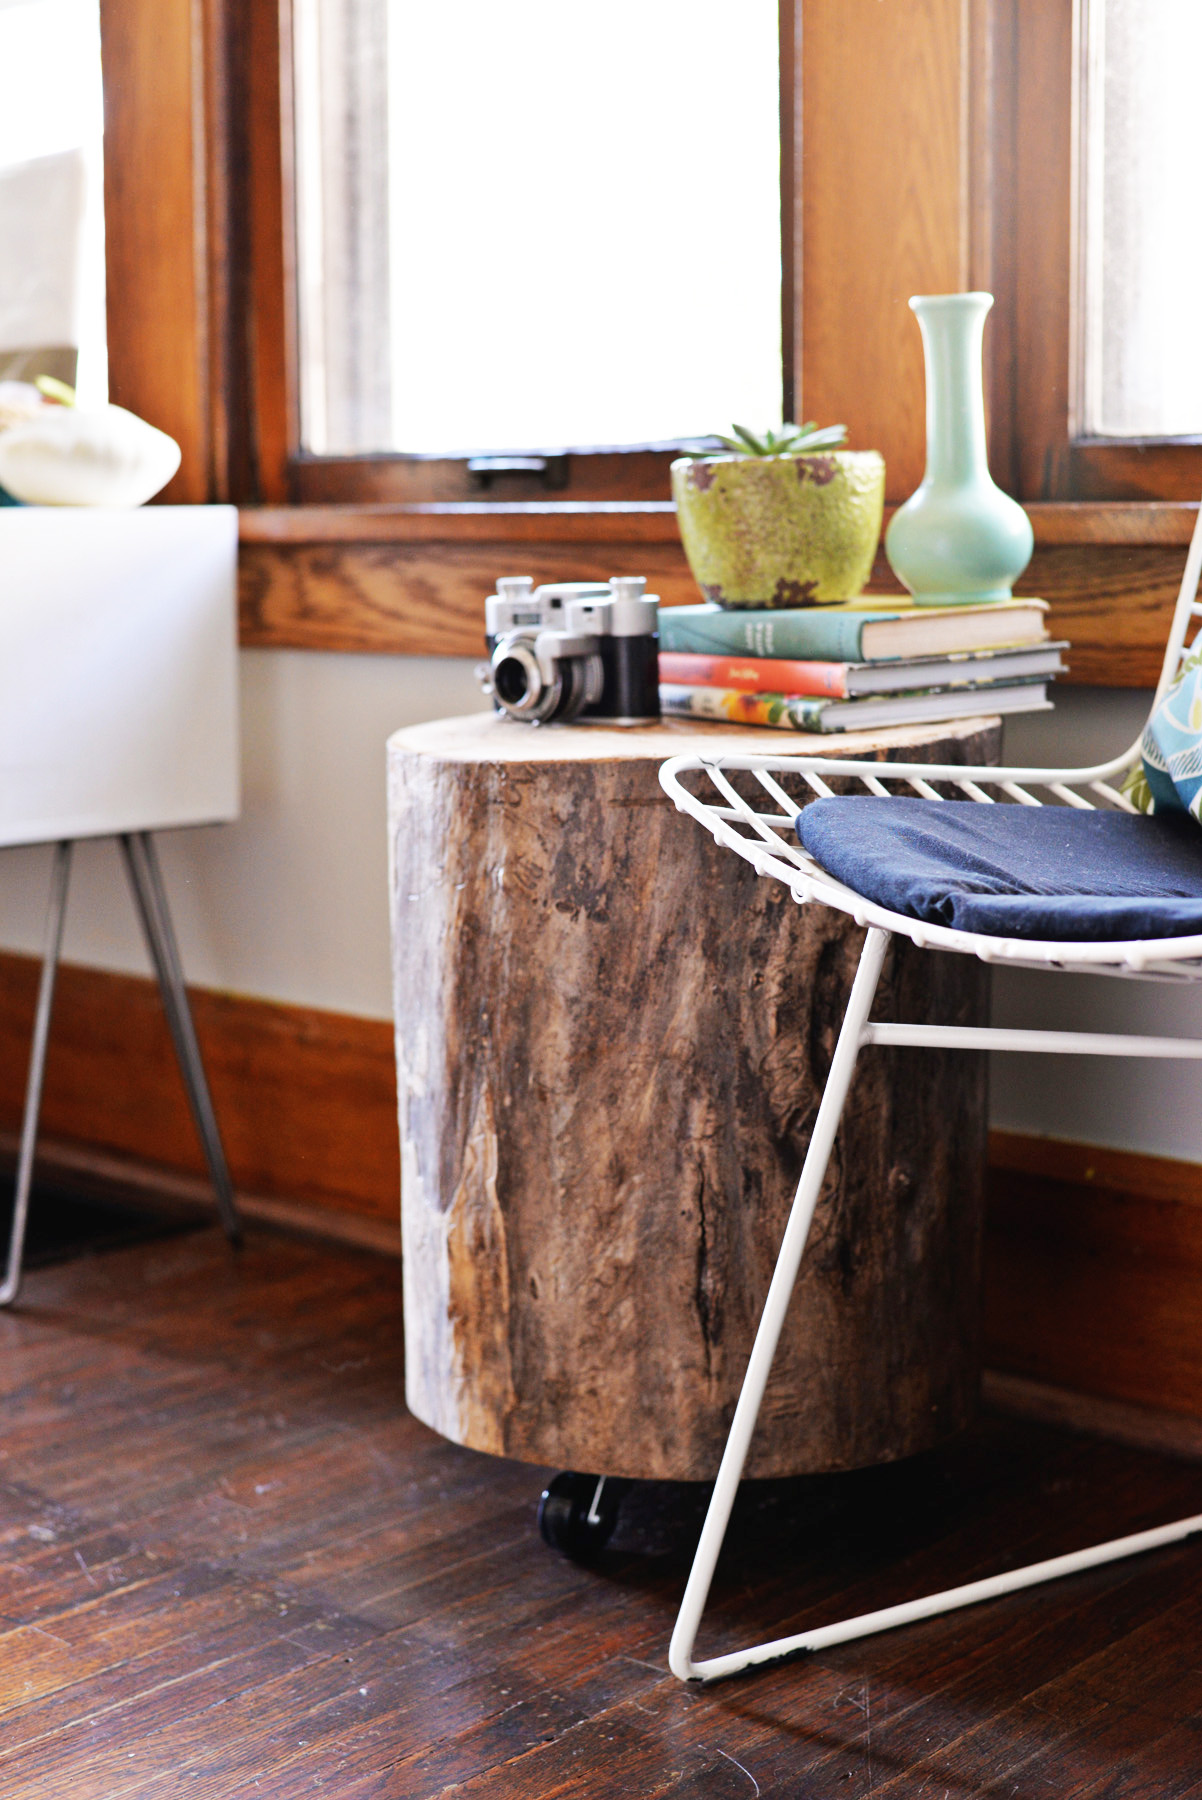 diy tree stump side table trunk accent reclaimed trestle stone coffee white wicker chair portable shade umbrella ikea storage solutions kitchen and chairs vintage bedroom small